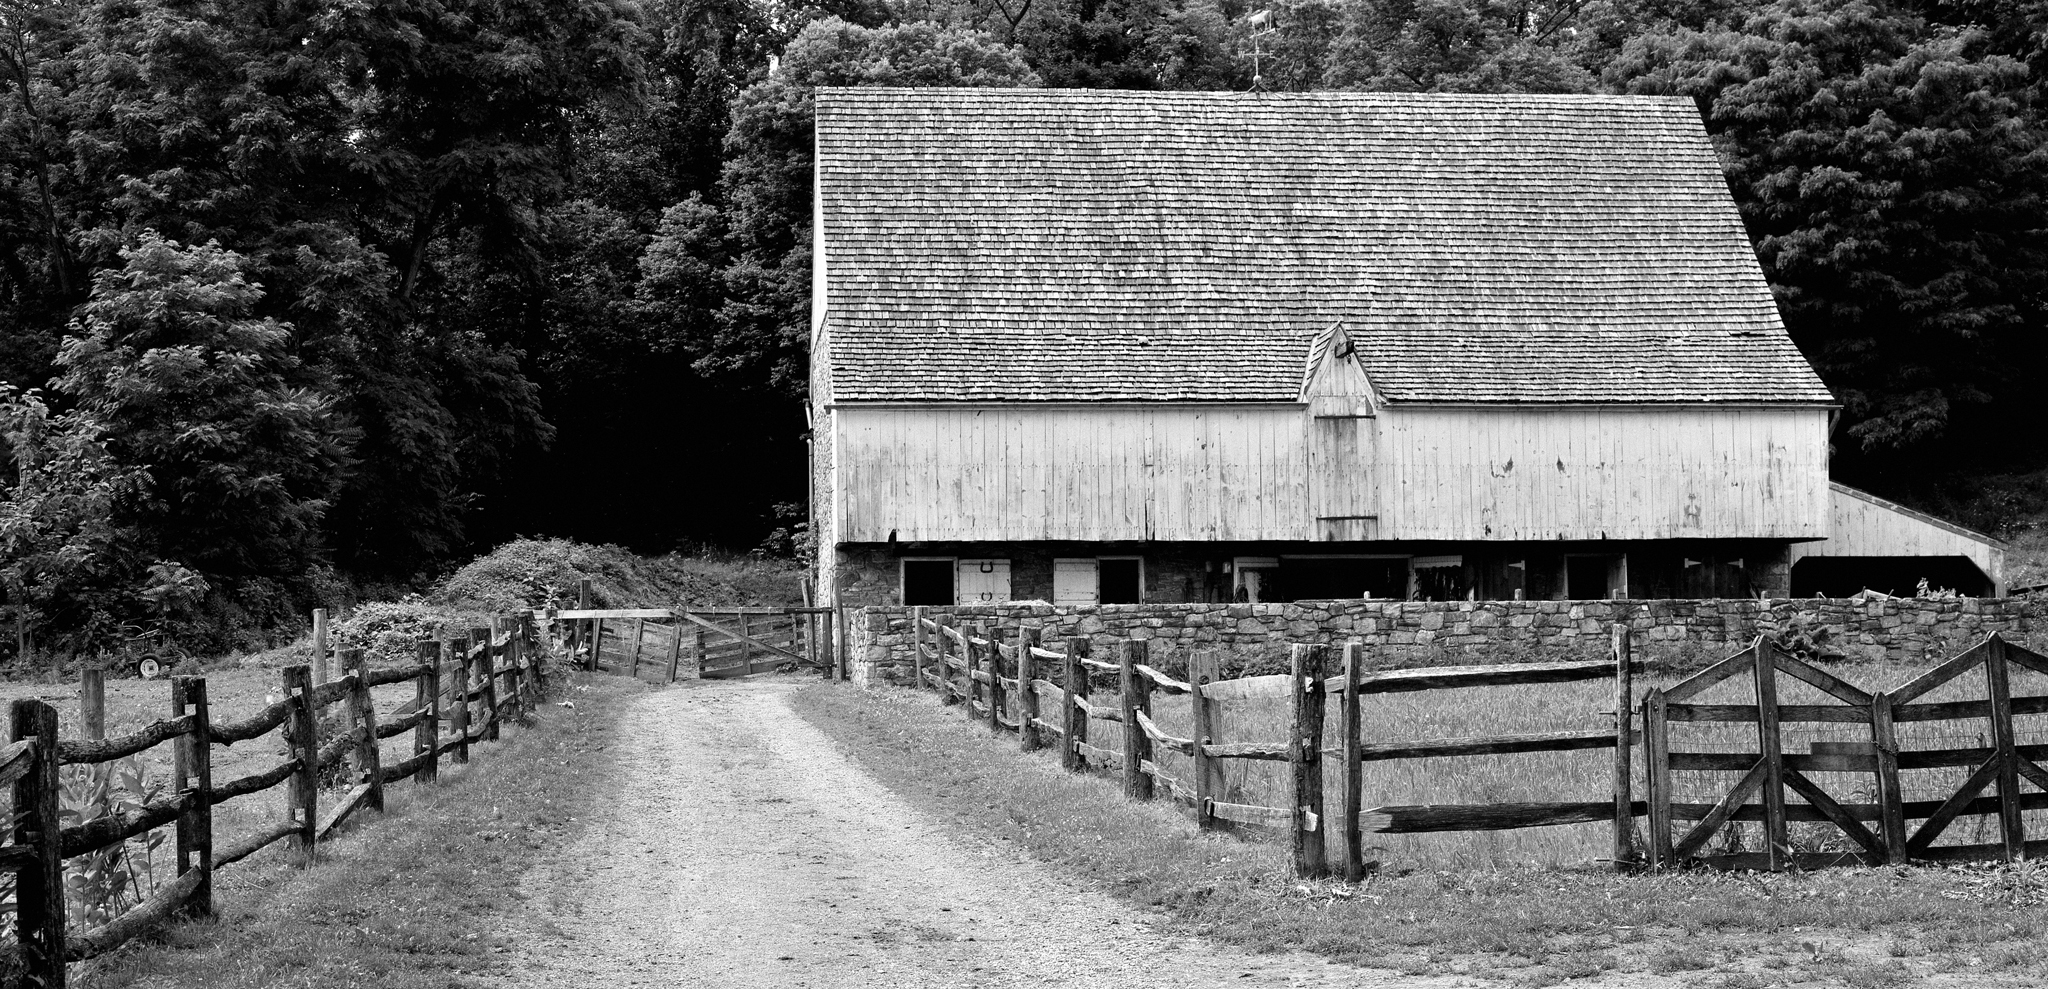 4x5_for_365_project_0169_Landis_Valley_federal_barn.jpg